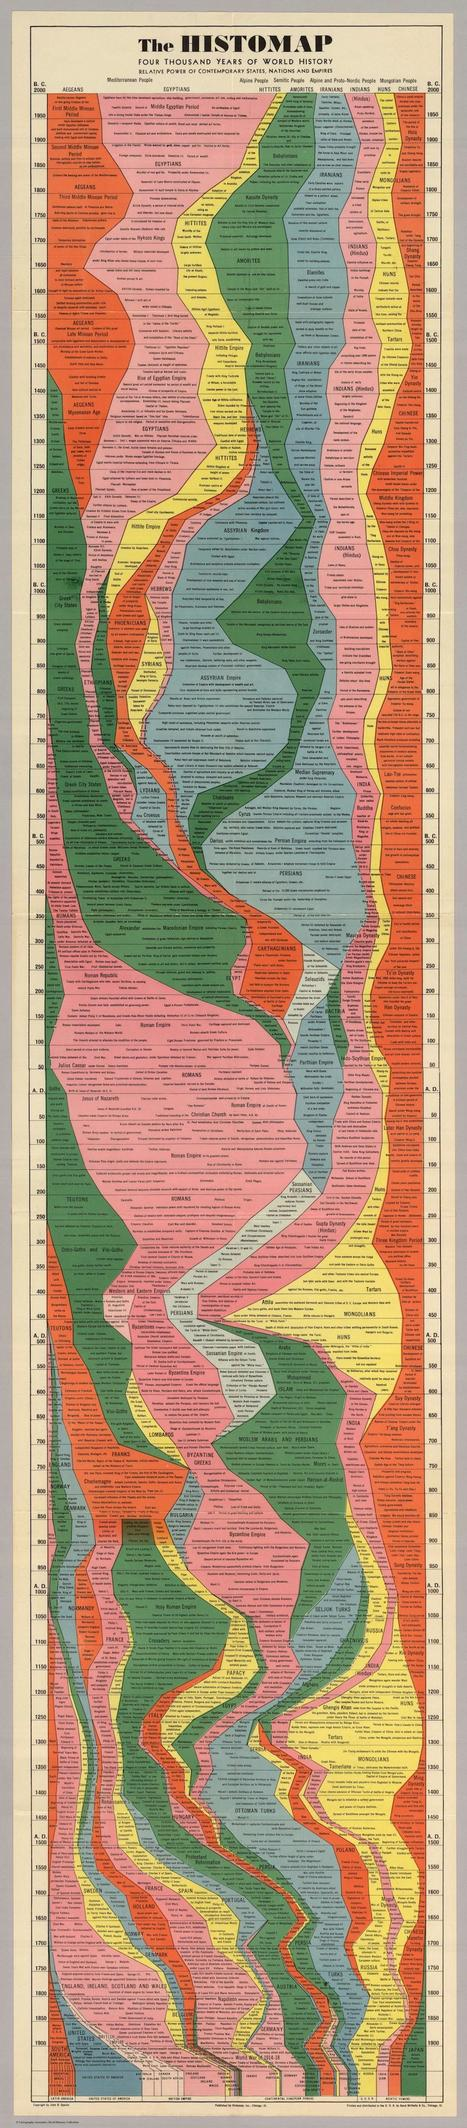 The Entire History of the World—Really, All of It—Distilled Into a Single Gorgeous Chart | Humanities | Scoop.it